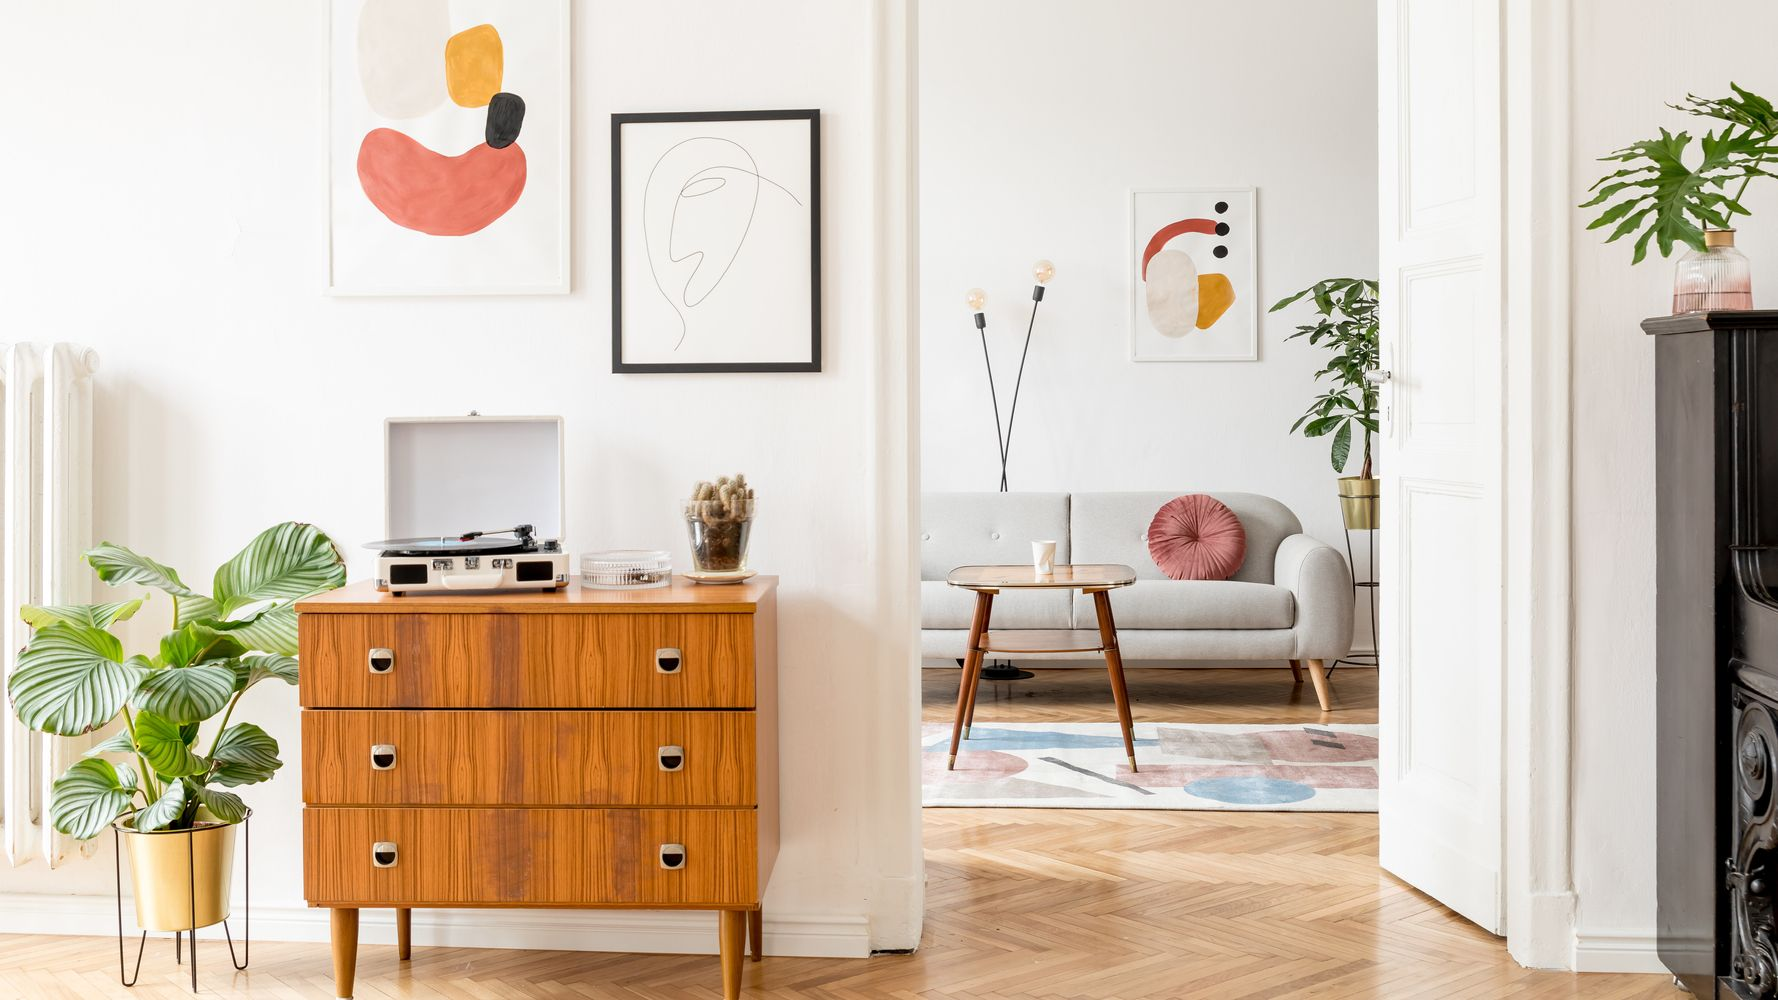 Magnificent 14 Furniture Stores Like West Elm To Buy Mid Century Modern Short Links Chair Design For Home Short Linksinfo